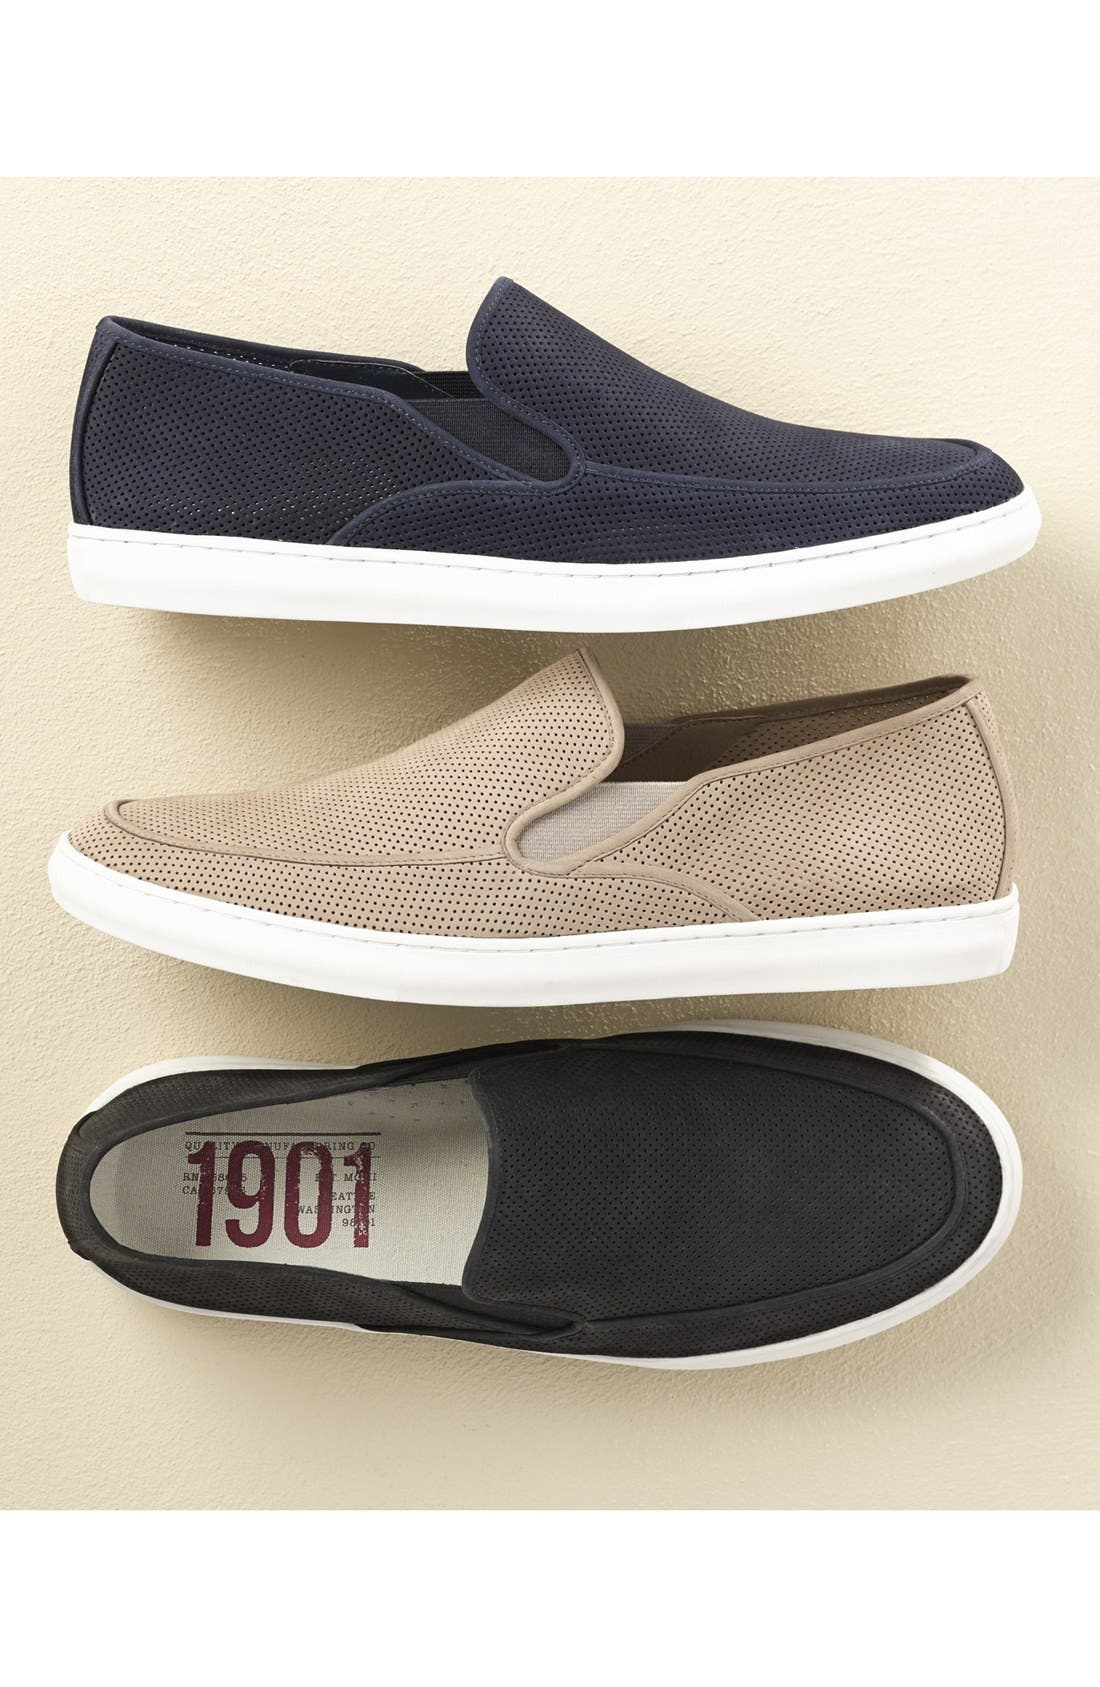 'Venice' Perforated Suede Slip-On,                             Alternate thumbnail 9, color,                             BLACK NUBUCK